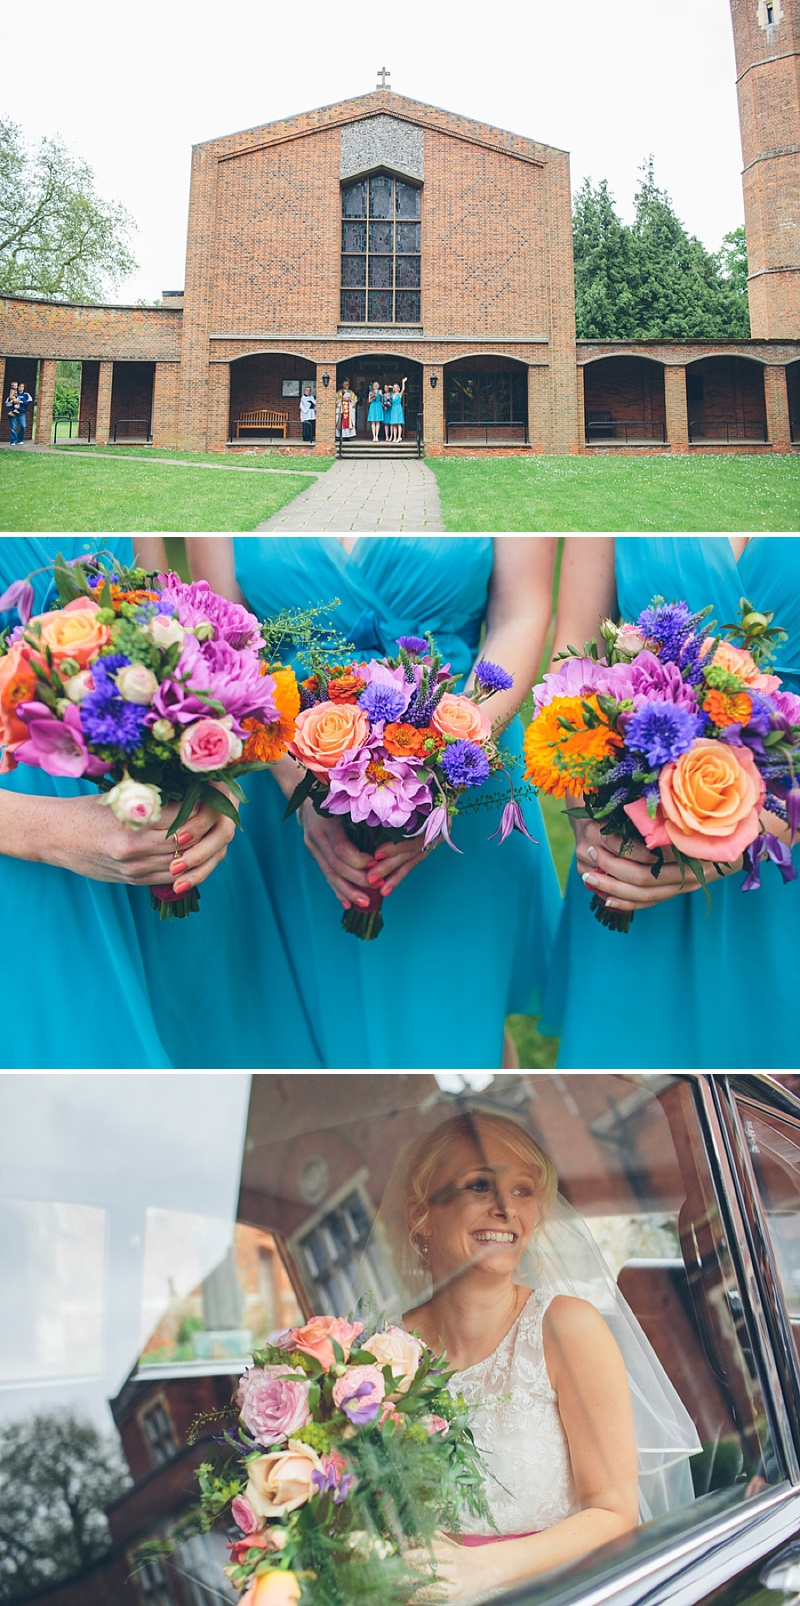 Colourful Rustic Wedding At The Rickety Barn Cambridgeshire Bride In Benjamin Roberts Gown Groom In Navy Cad And The Dandy Suit Images By Richard Skins023